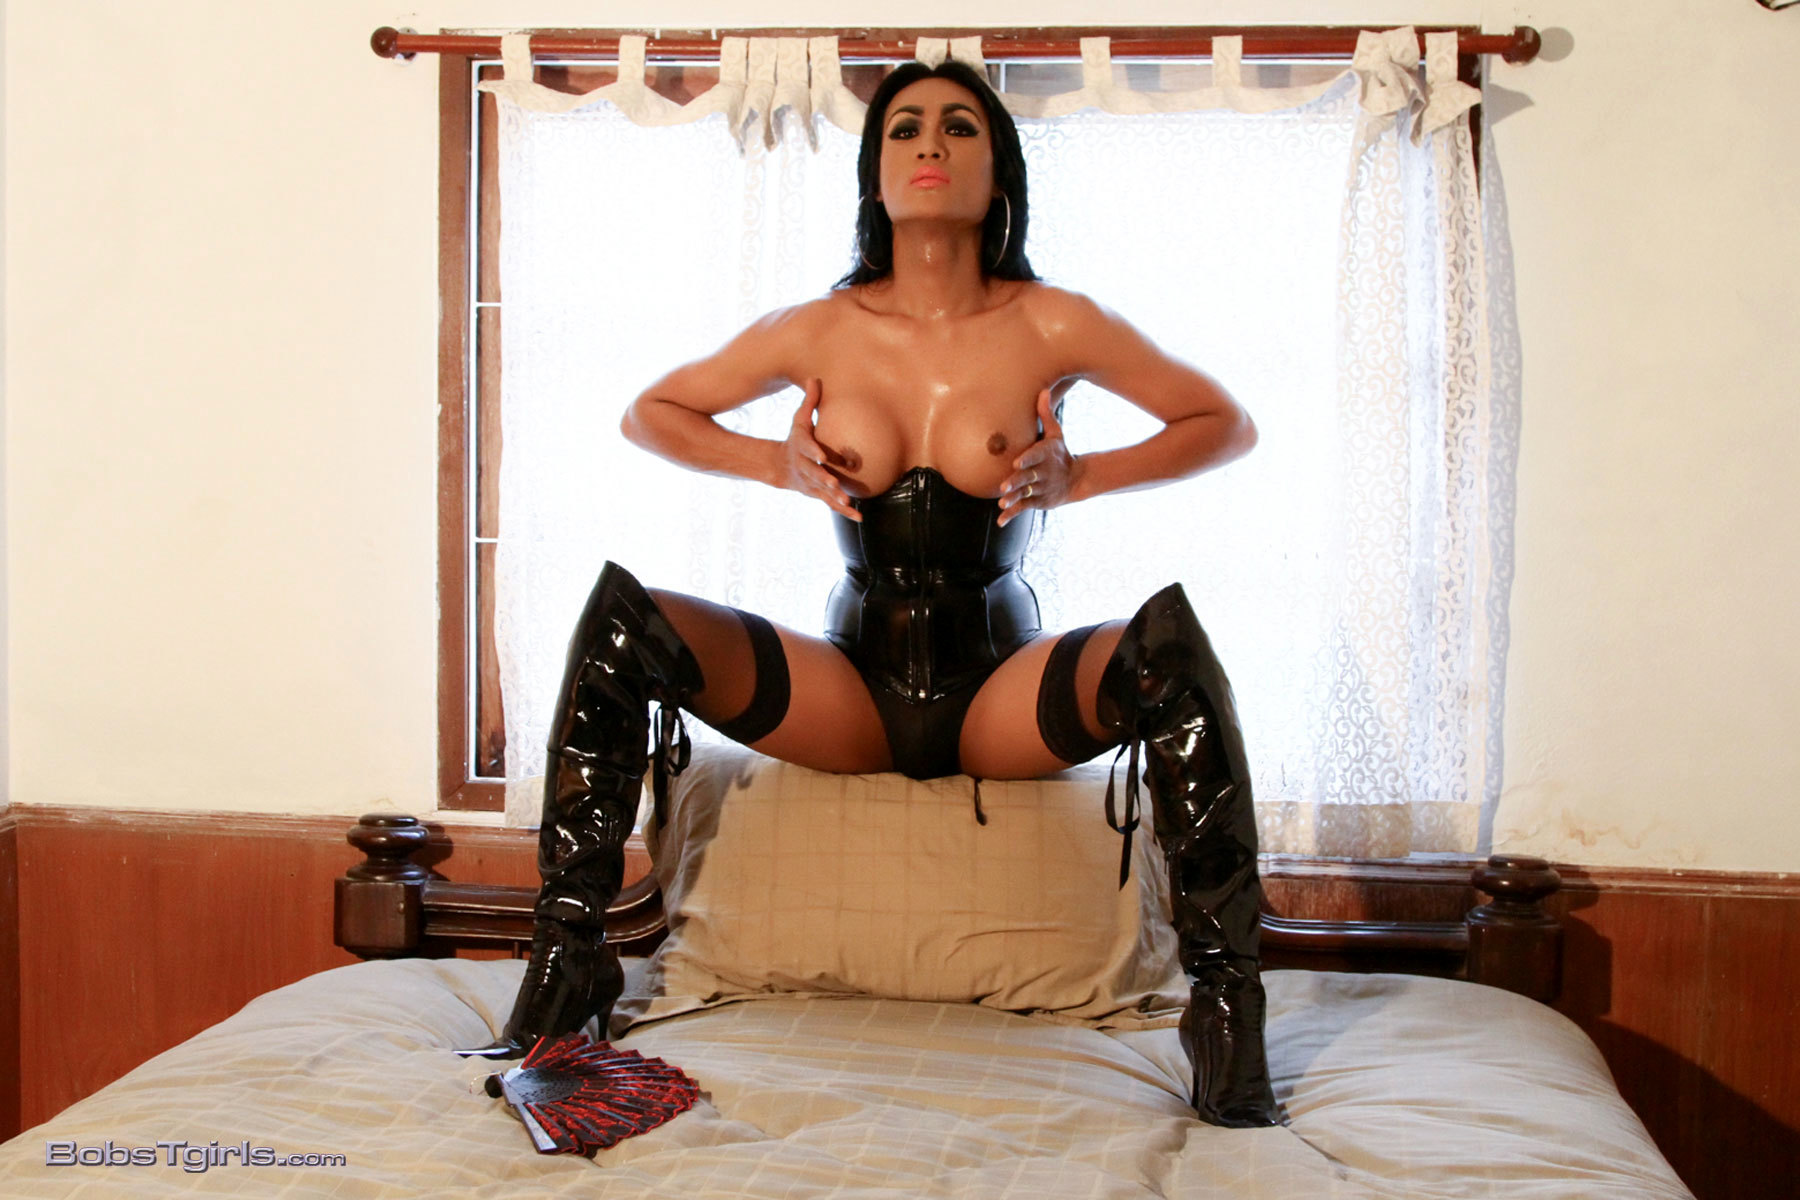 Steamy Amy Posing In Corset & Boots